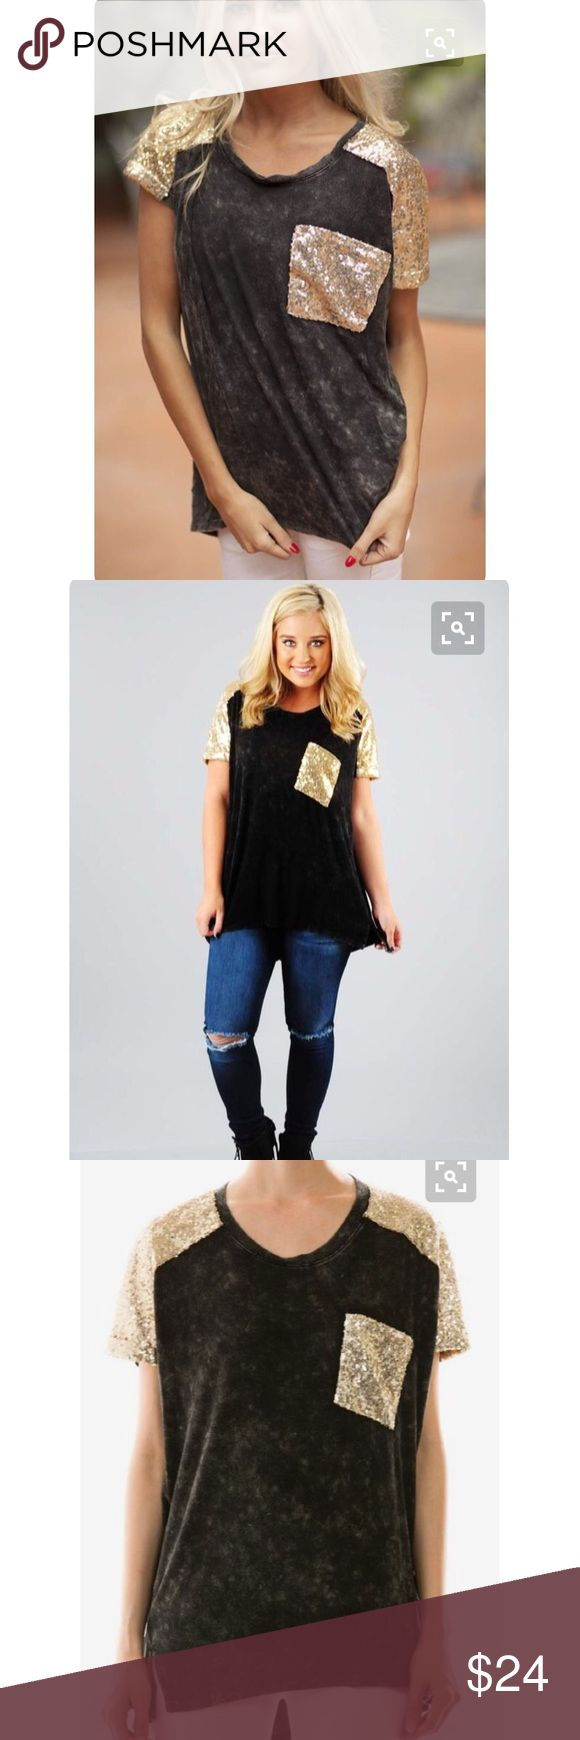 Gold Sequin Pocket Tee Gold Sequin Pocket Tee! Only worn a handful of times! Great condition. Fits true to size and is made to be a looser fitting top. Originally purchased online from Shop Hope's. Tops Tees - Short Sleeve